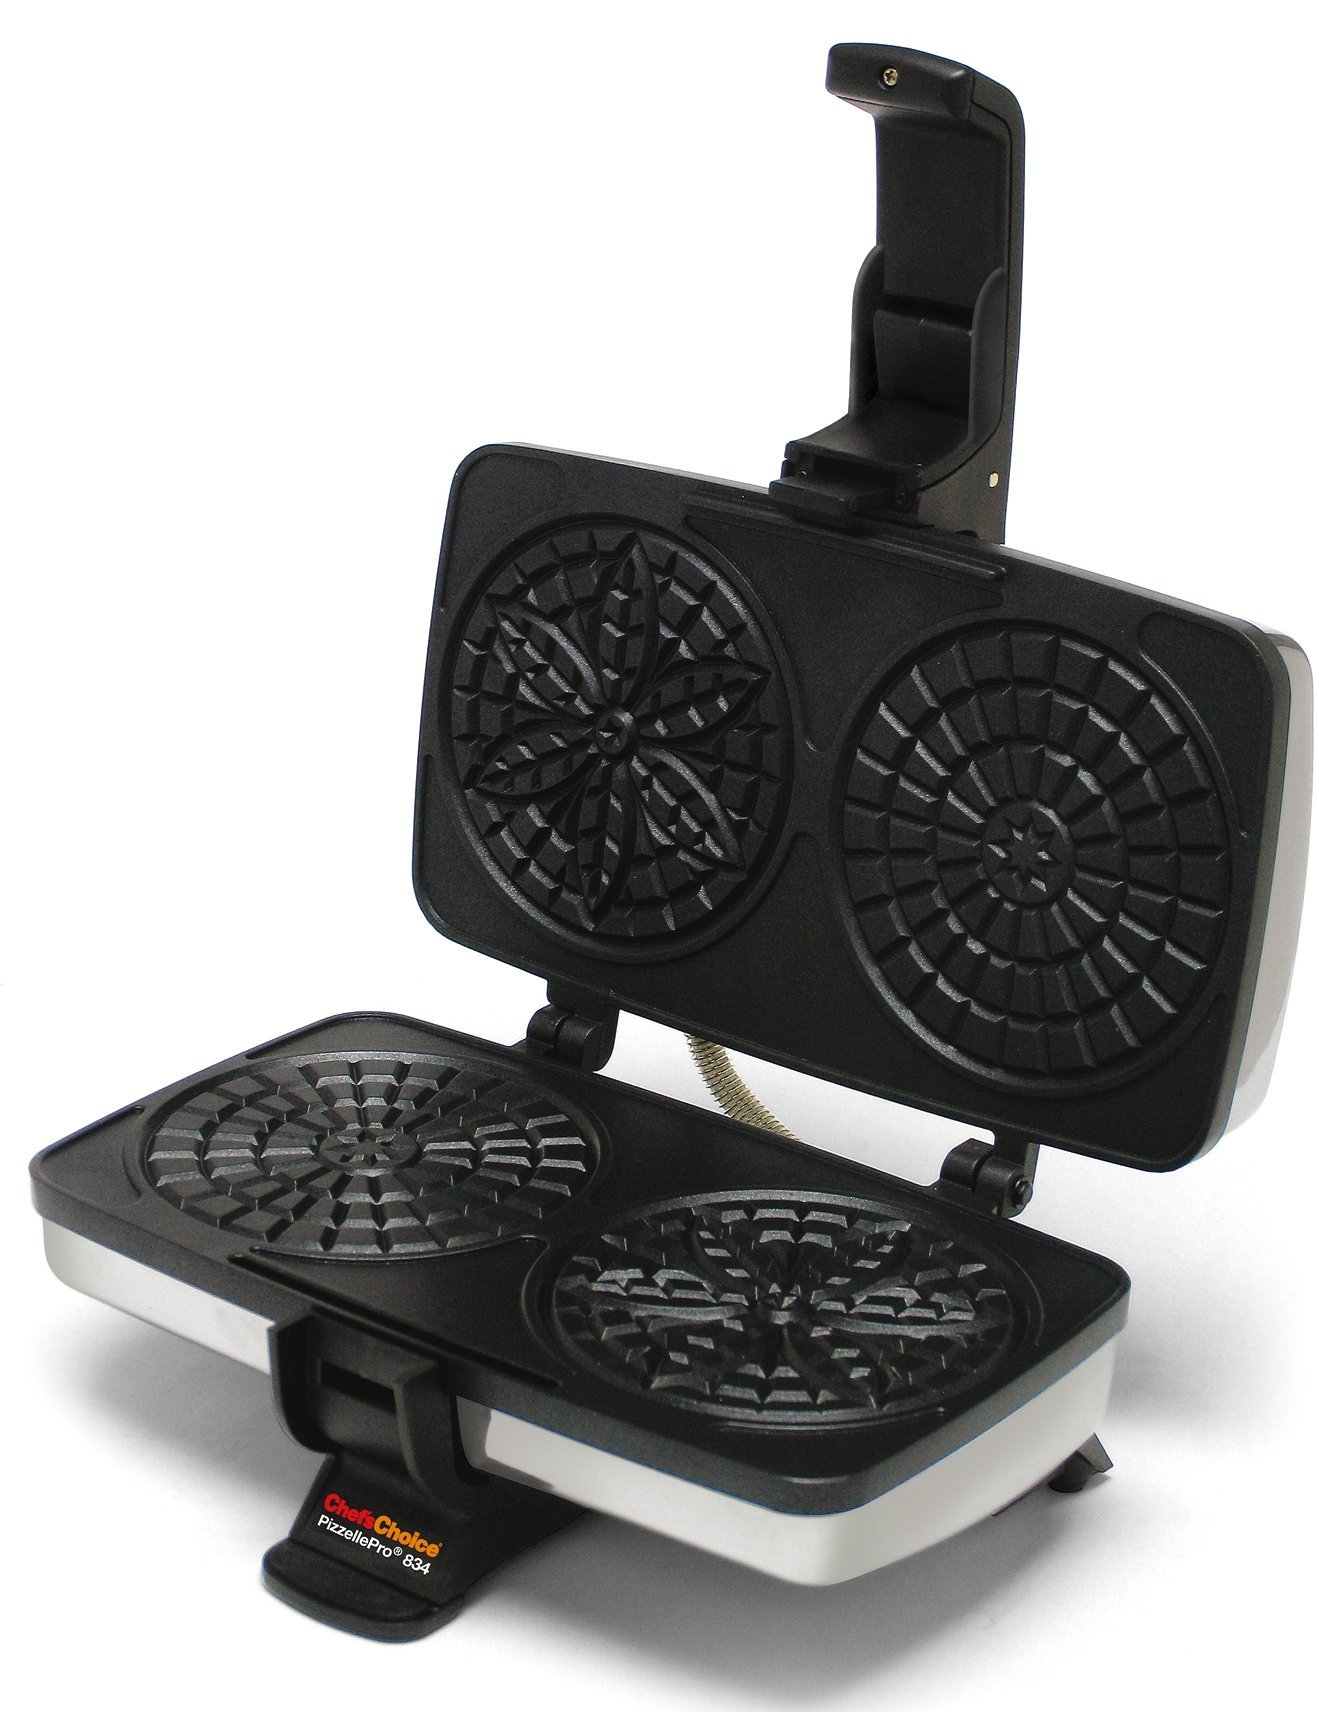 Chef'sChoice 834 PizzellePro Toscano Nonstick Pizzelle Maker Features Baking Indicator Light Consistent Even Heat Press Delicious Pizzelles in Seconds, 2-Slice, Silver (Renewed) by Chef'sChoice